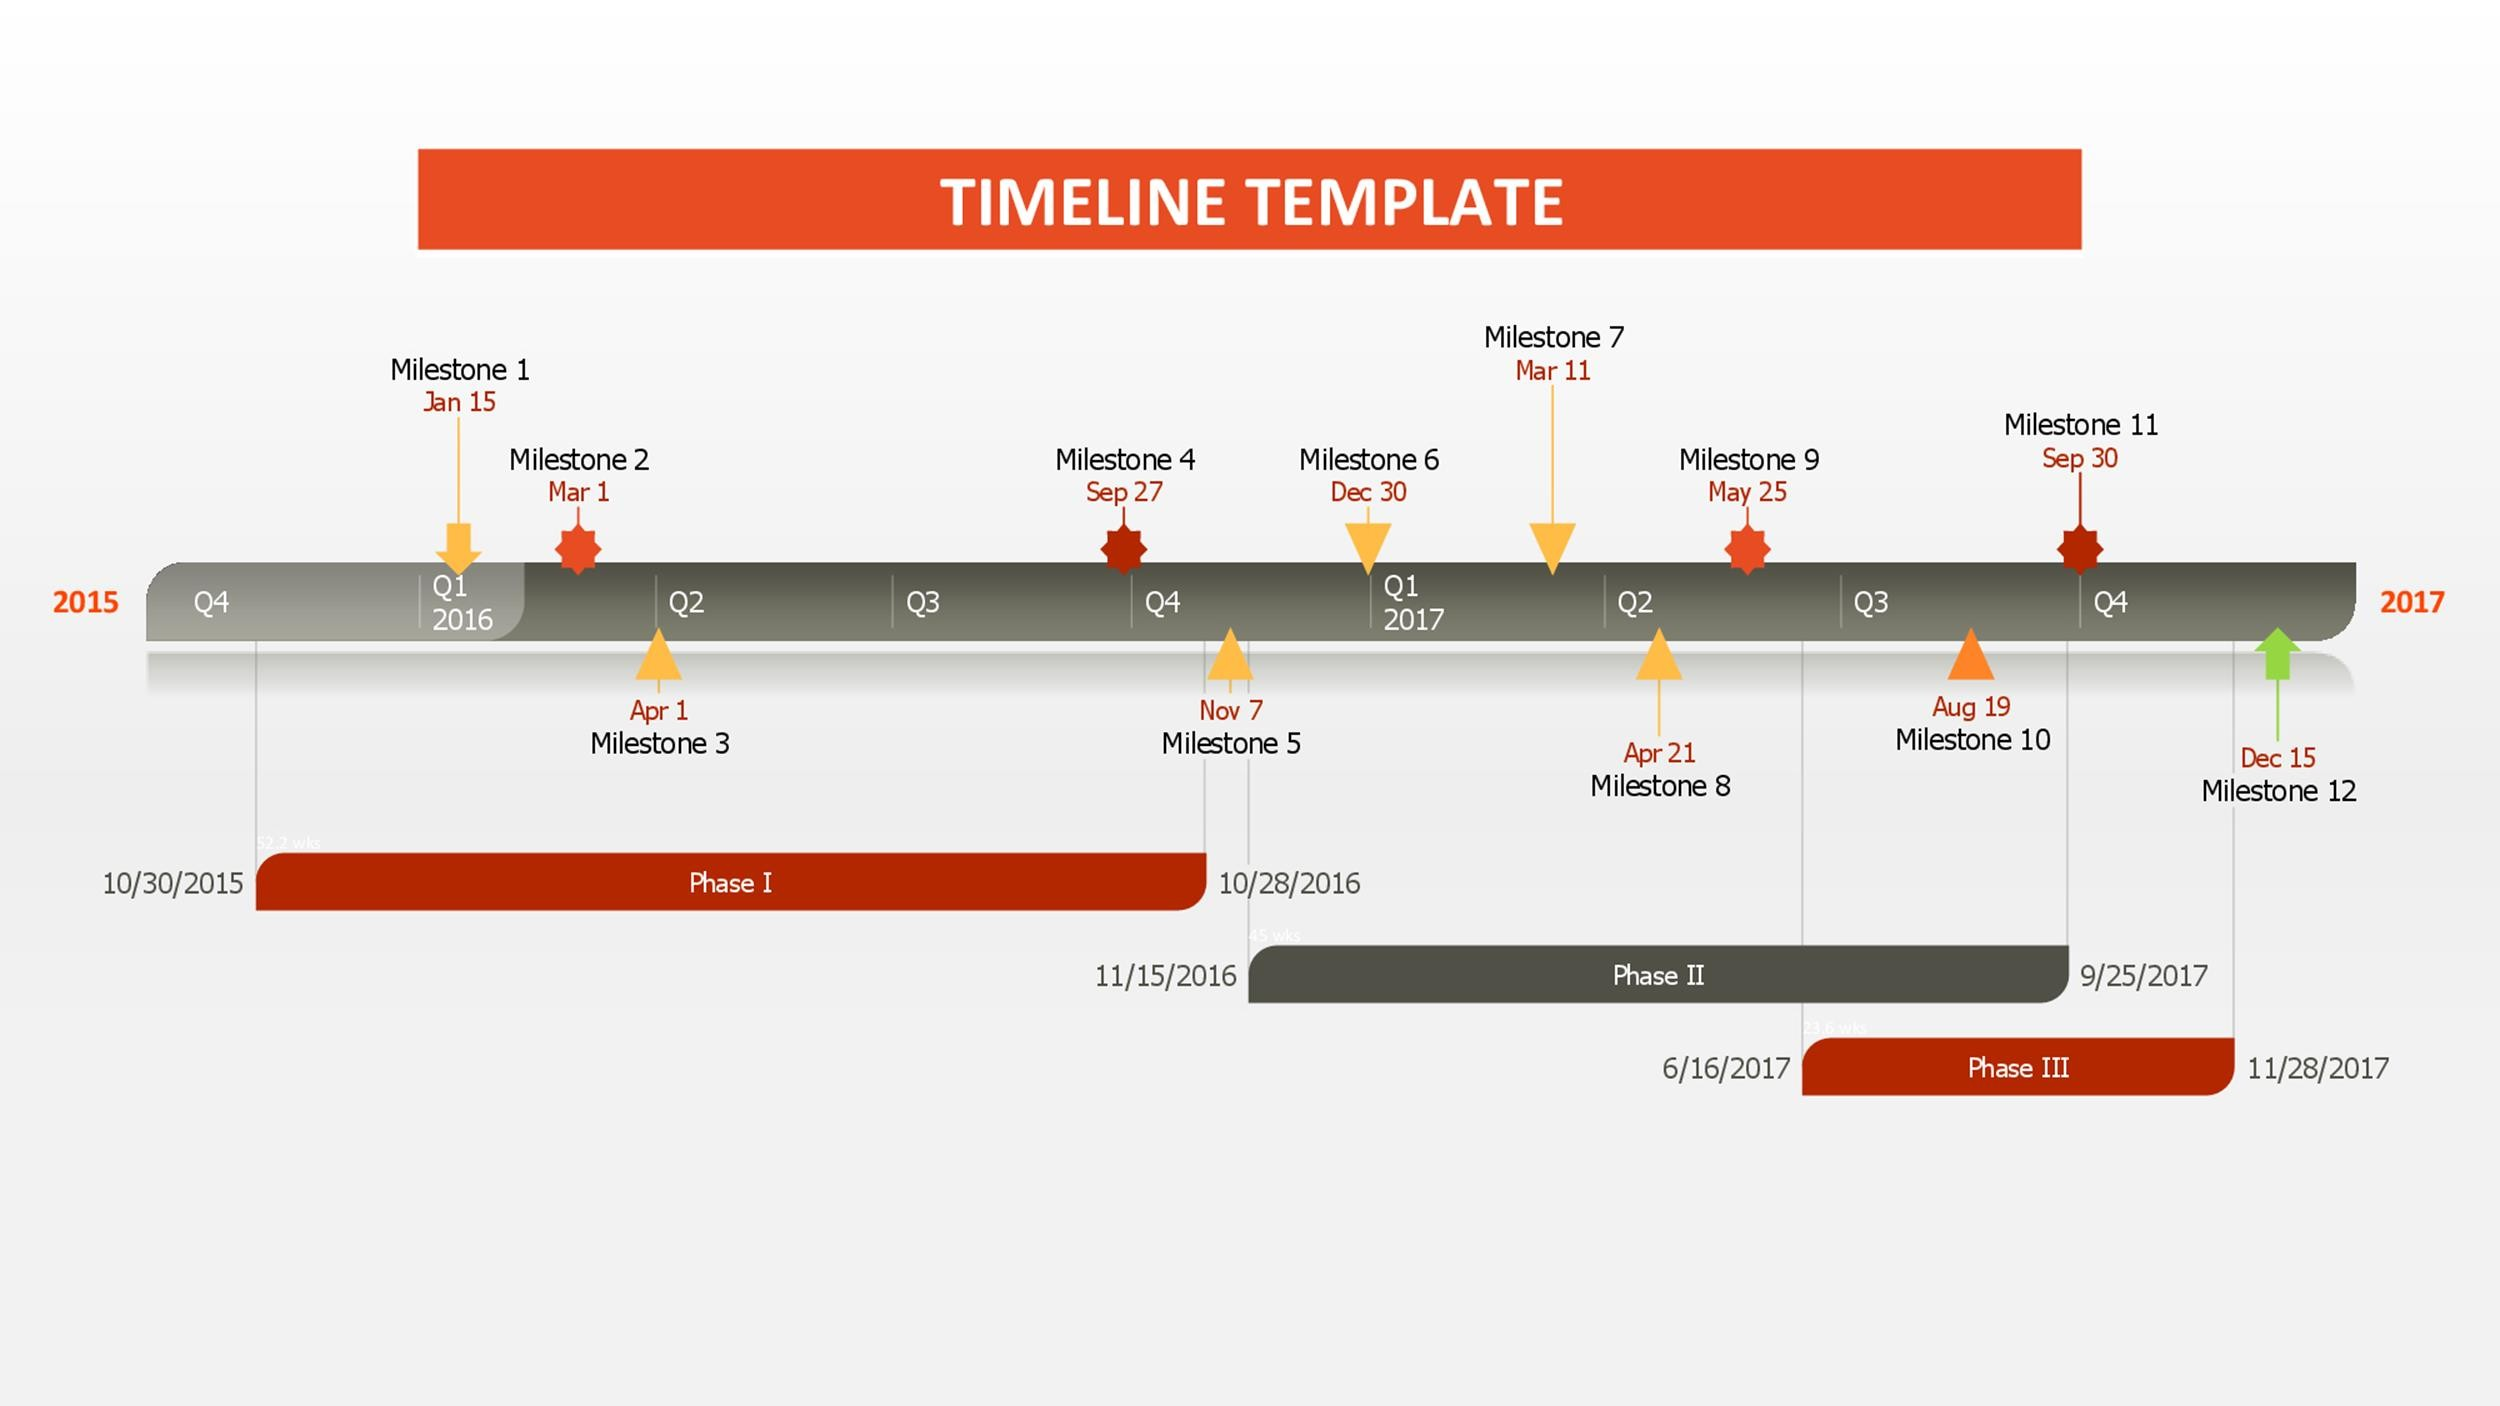 Timeline Templates Excel Power Point Word Template Lab - Powerpoint timeline templates